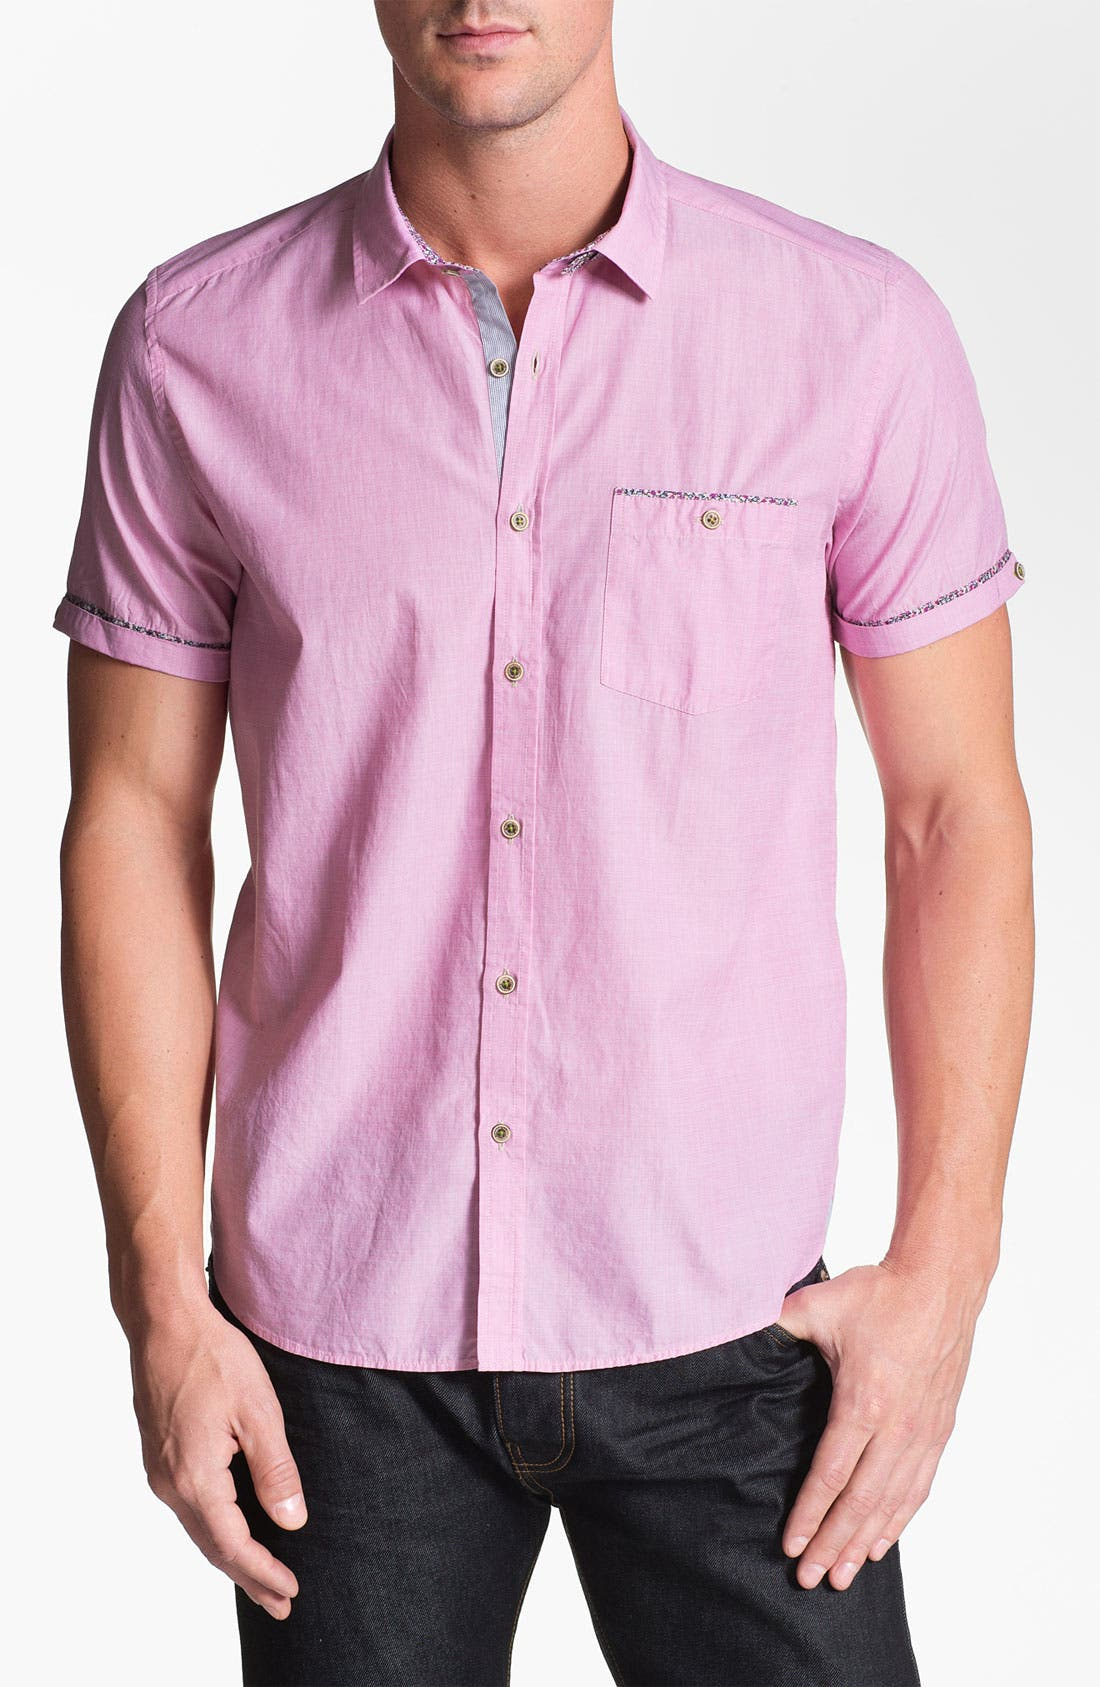 Alternate Image 1 Selected - Ted Baker London 'Pingty Pattern' Trim Fit Sport Shirt